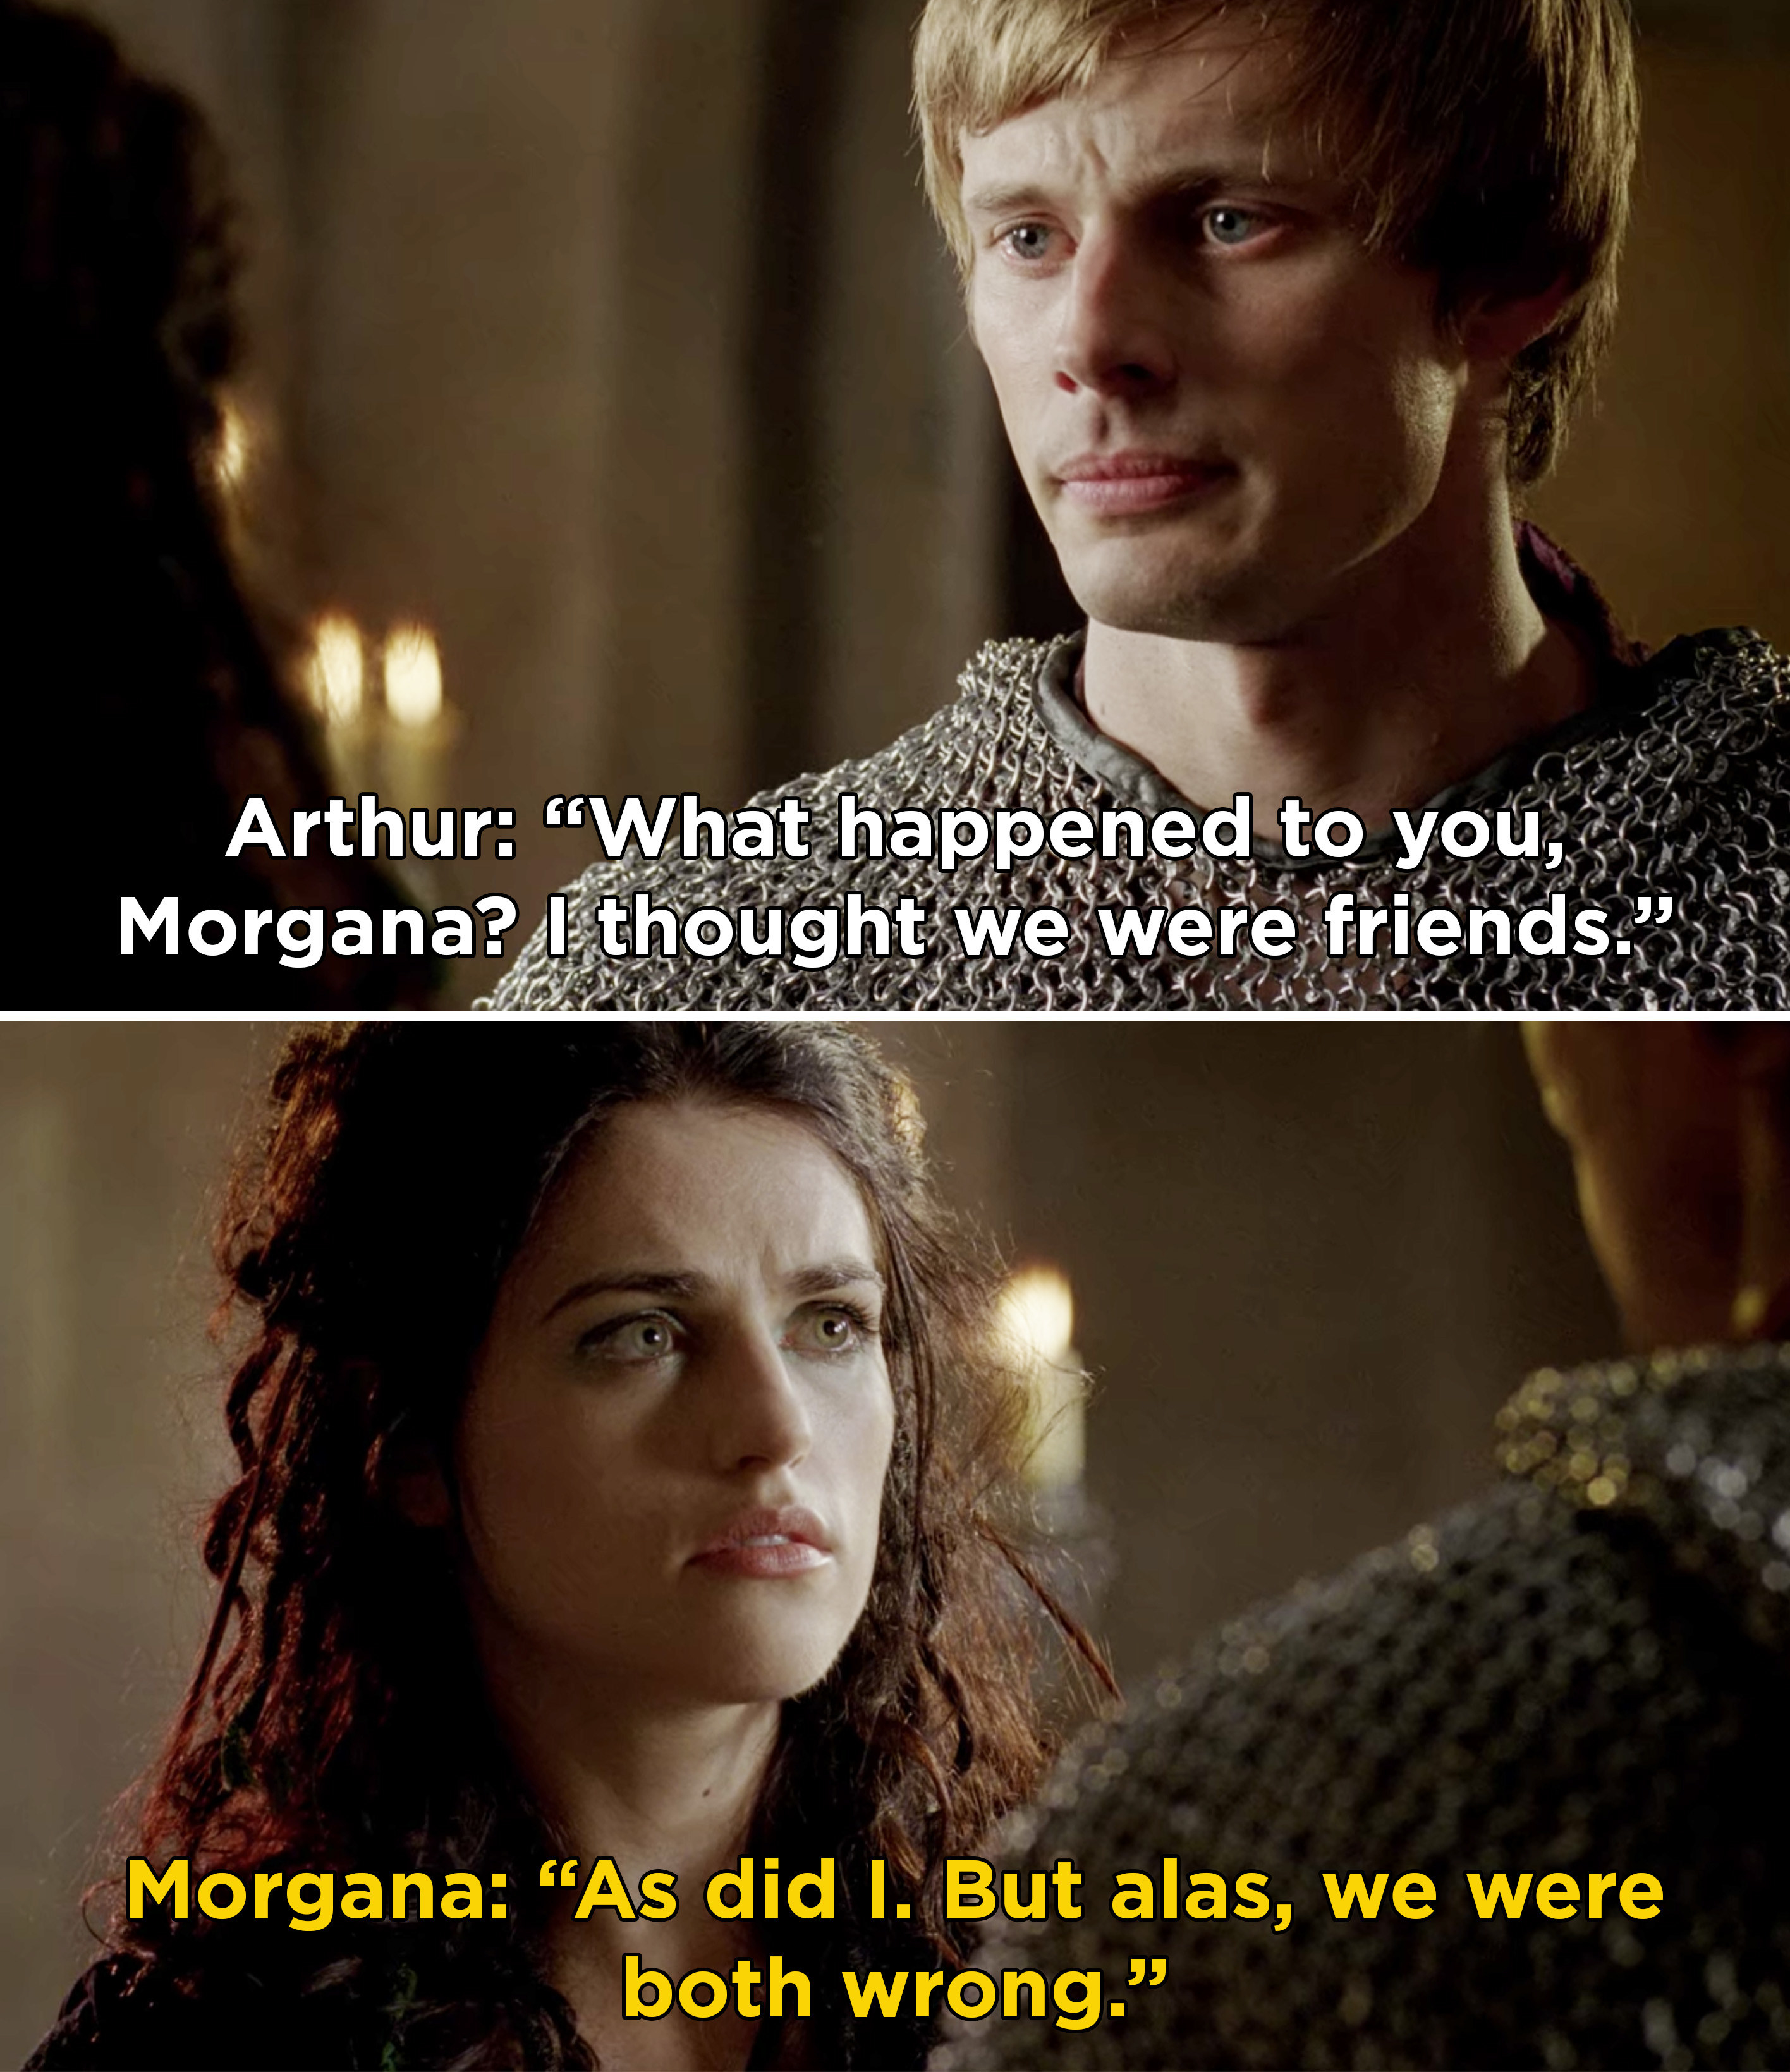 Arthur telling Morgana that he thought they were friends, and Morgana saying she thought the same